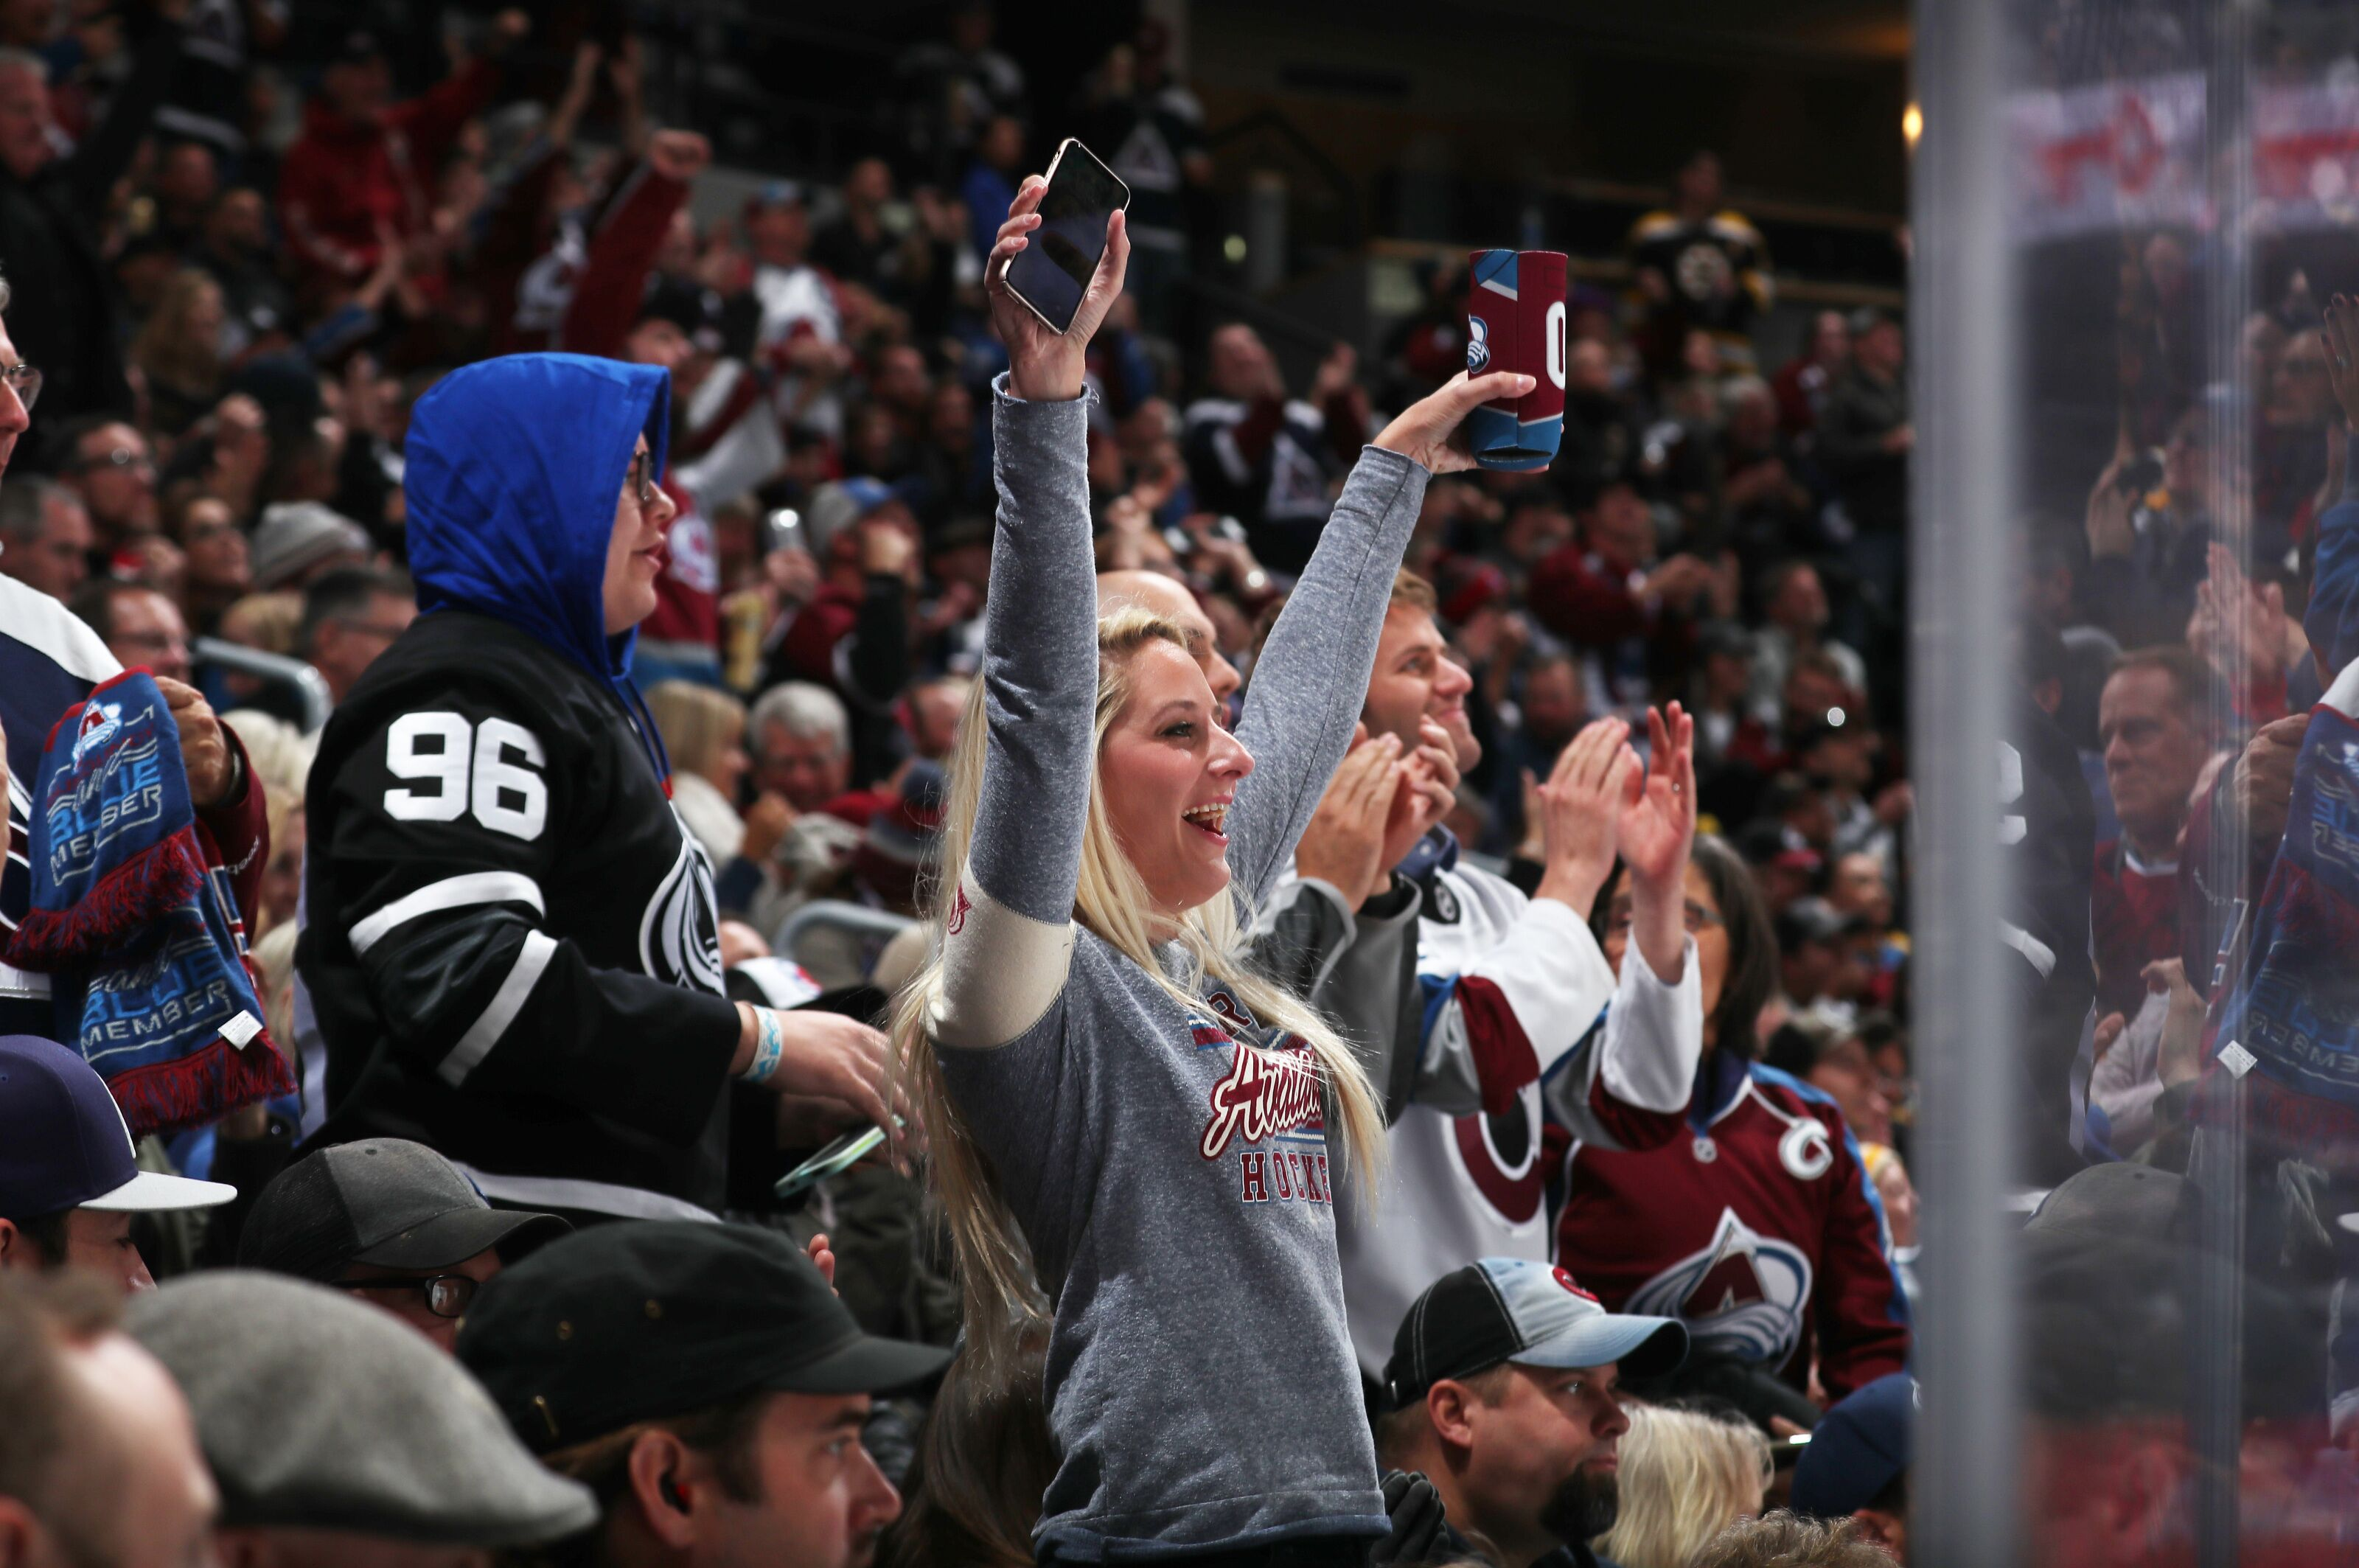 Colorado Avalanche: Most Adorable Player At Meet The Team